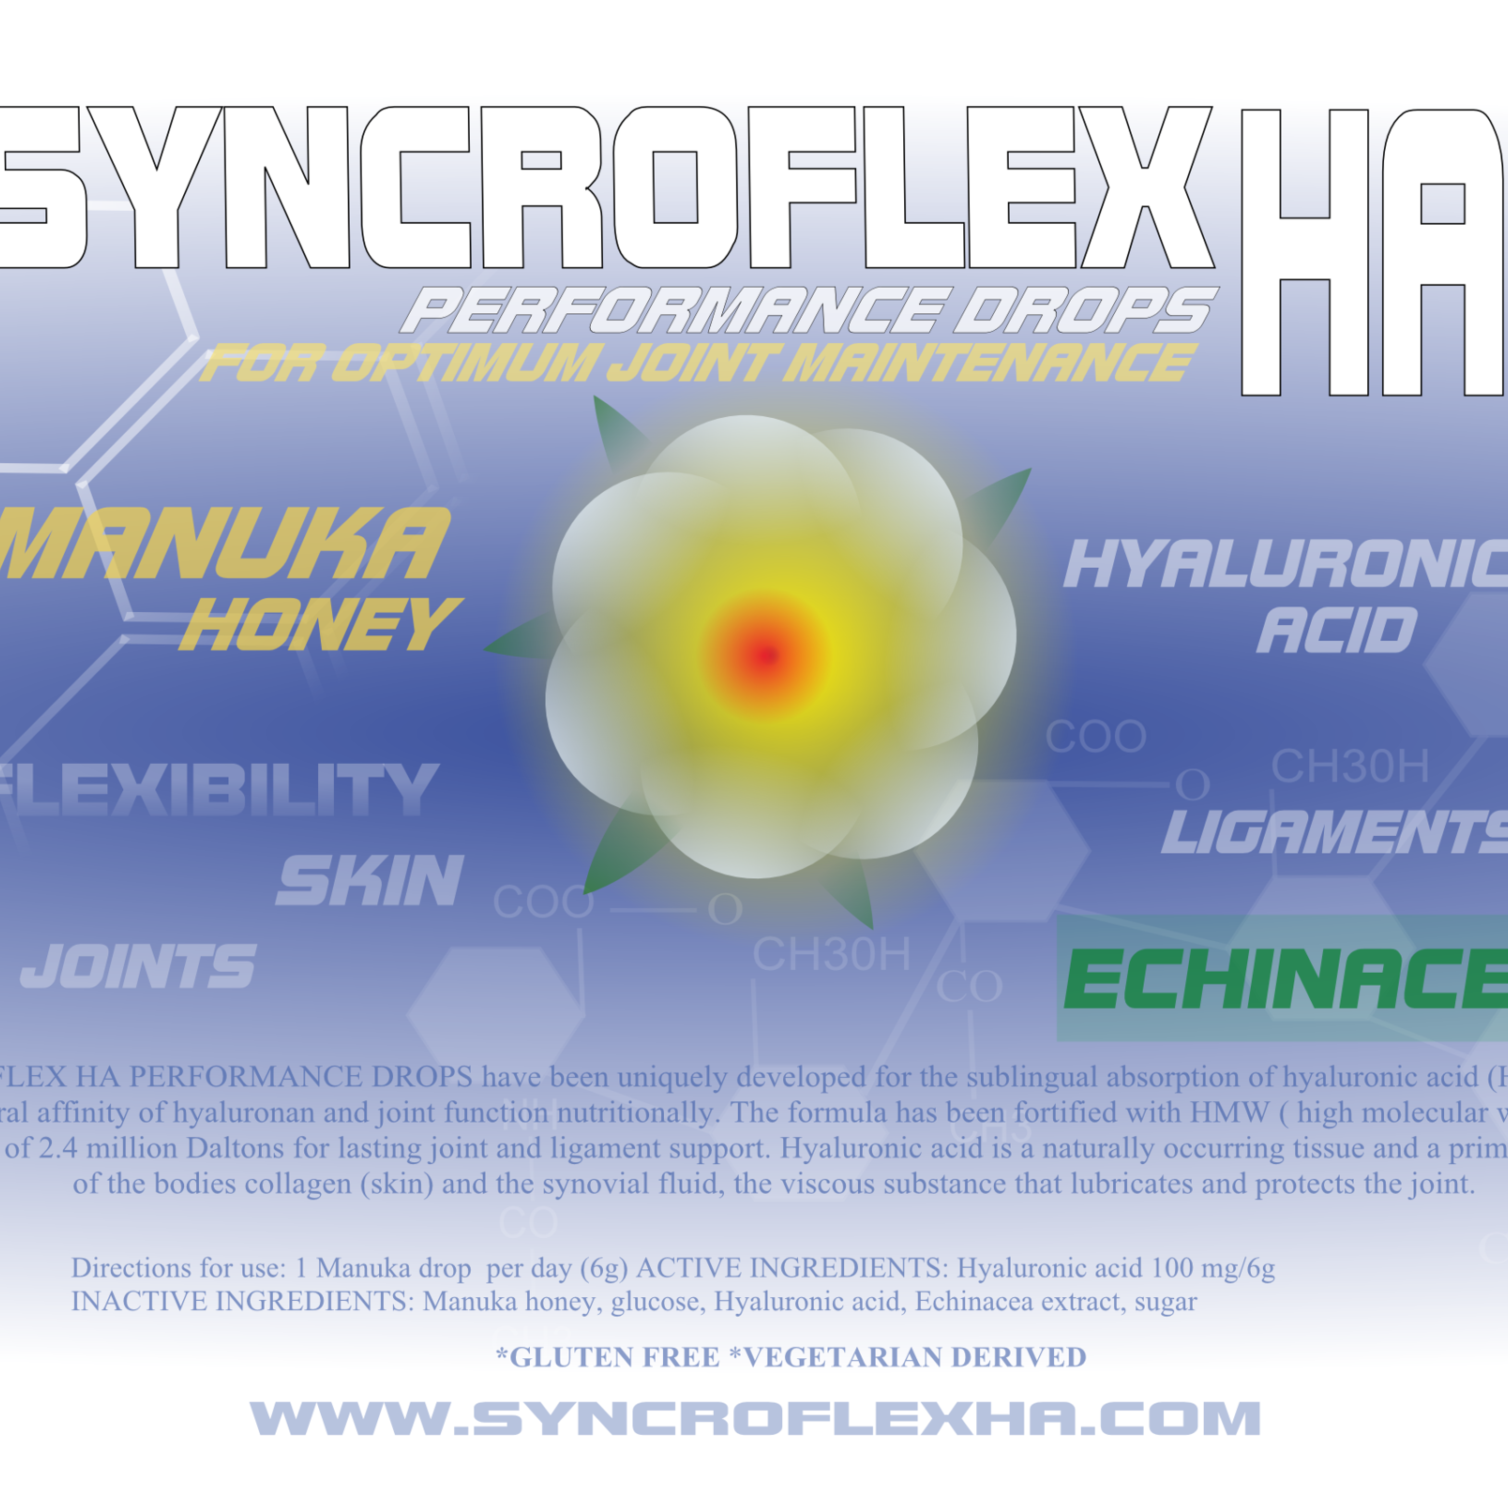 SYNCROFLEX HA MANUKA HONEY PERFORMANCE DROPS